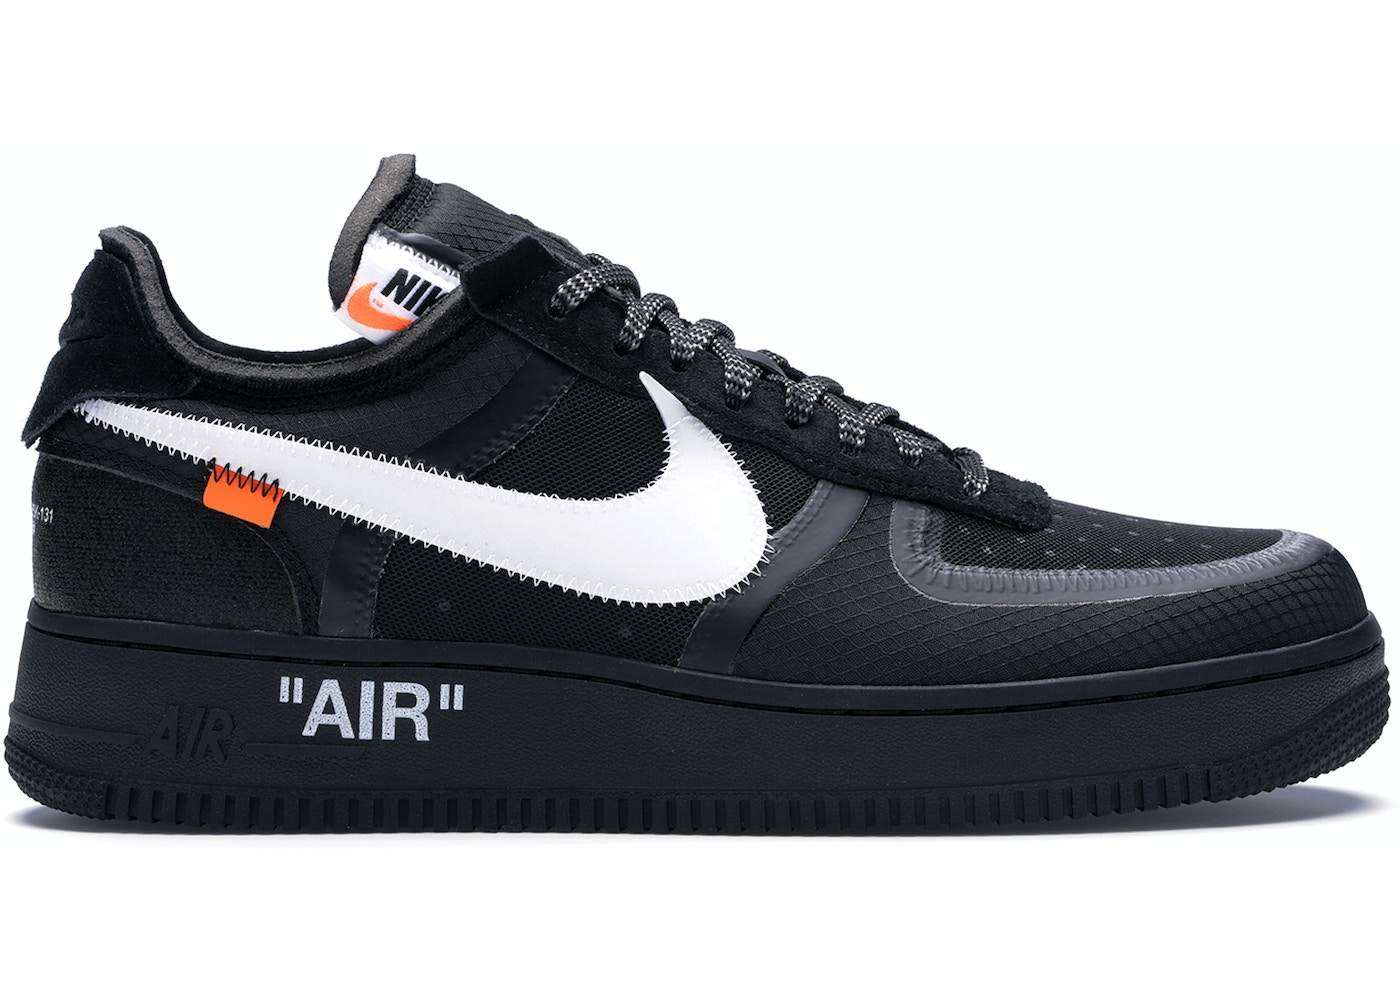 283e6826 Air Force 1 Low Off-White Black White